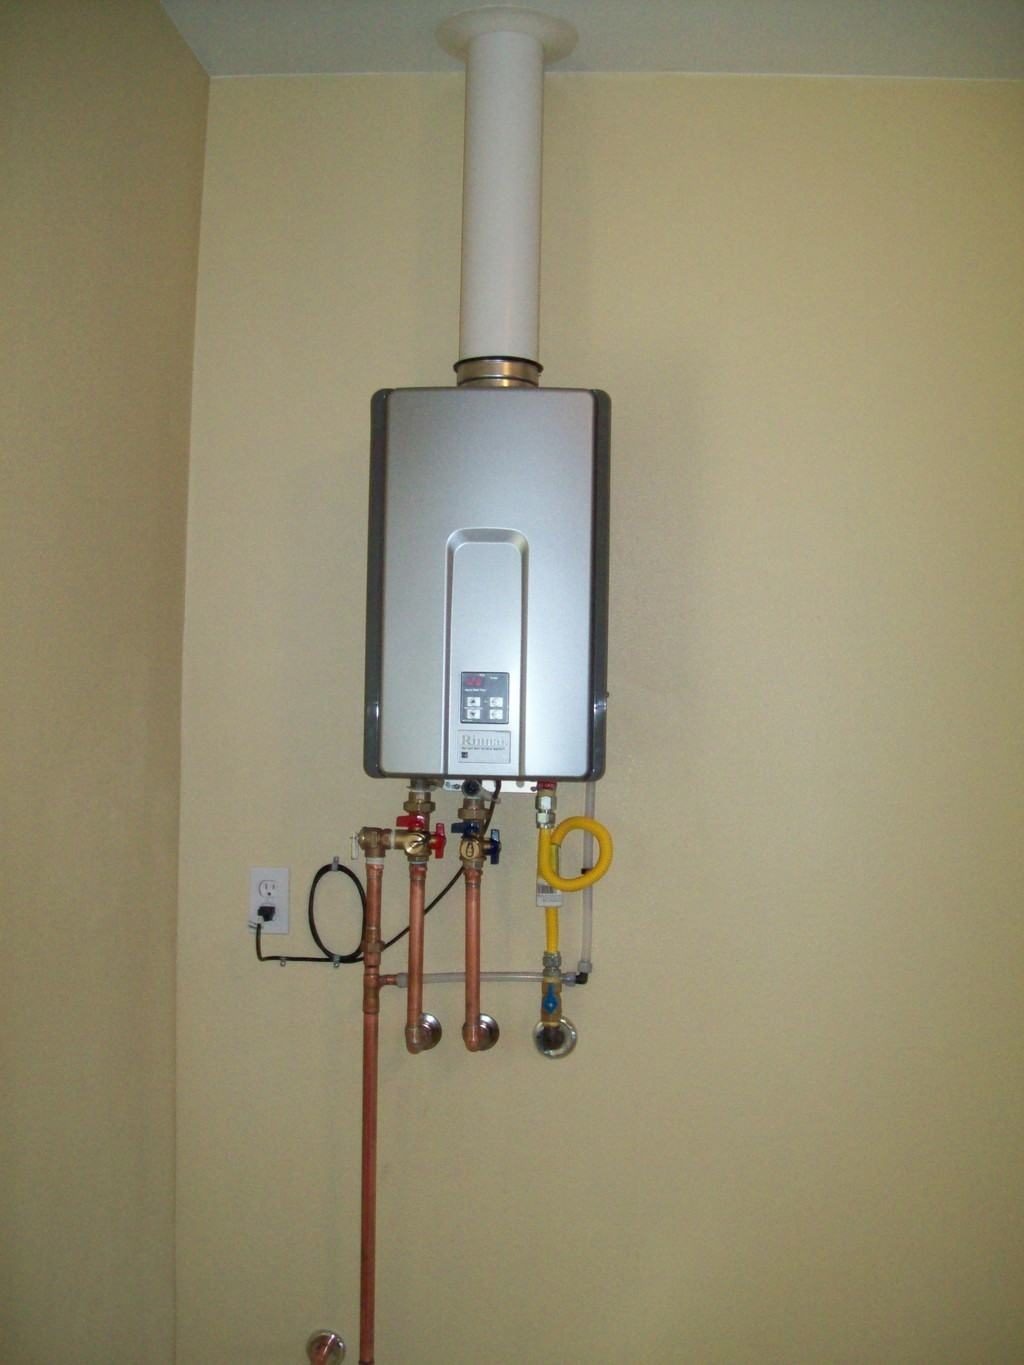 water heater usb to headphone jack wiring diagram plumber in dc we have over 700 five star reviews